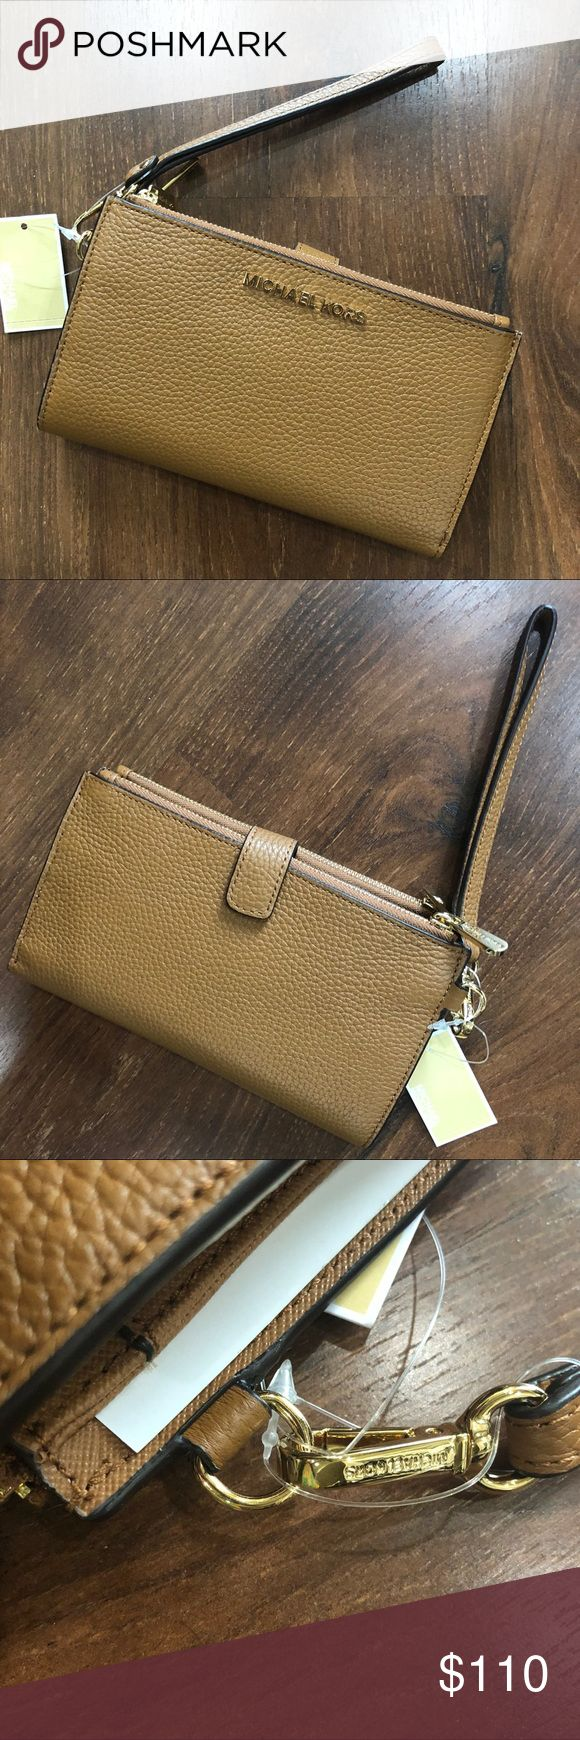 Michael Kors wristlet wallet cell phone acorn NWT Michael Kors wristlet! Beautiful acorn (brown) soft pebble leather Snap closure Removable wrist strap  Fits iPhone 7plus 8 plus and iPhone X. Will also fit smaller phones Two large zipper pockets 6 credit card slots 1 ID slot 2 slip pockets  I am open to reasonable offers but please be mindful this item is already priced below retail, sellers fees, condition (NWT) and brand when offering. Same/Next day shipping! ✈️ Questions, please them…